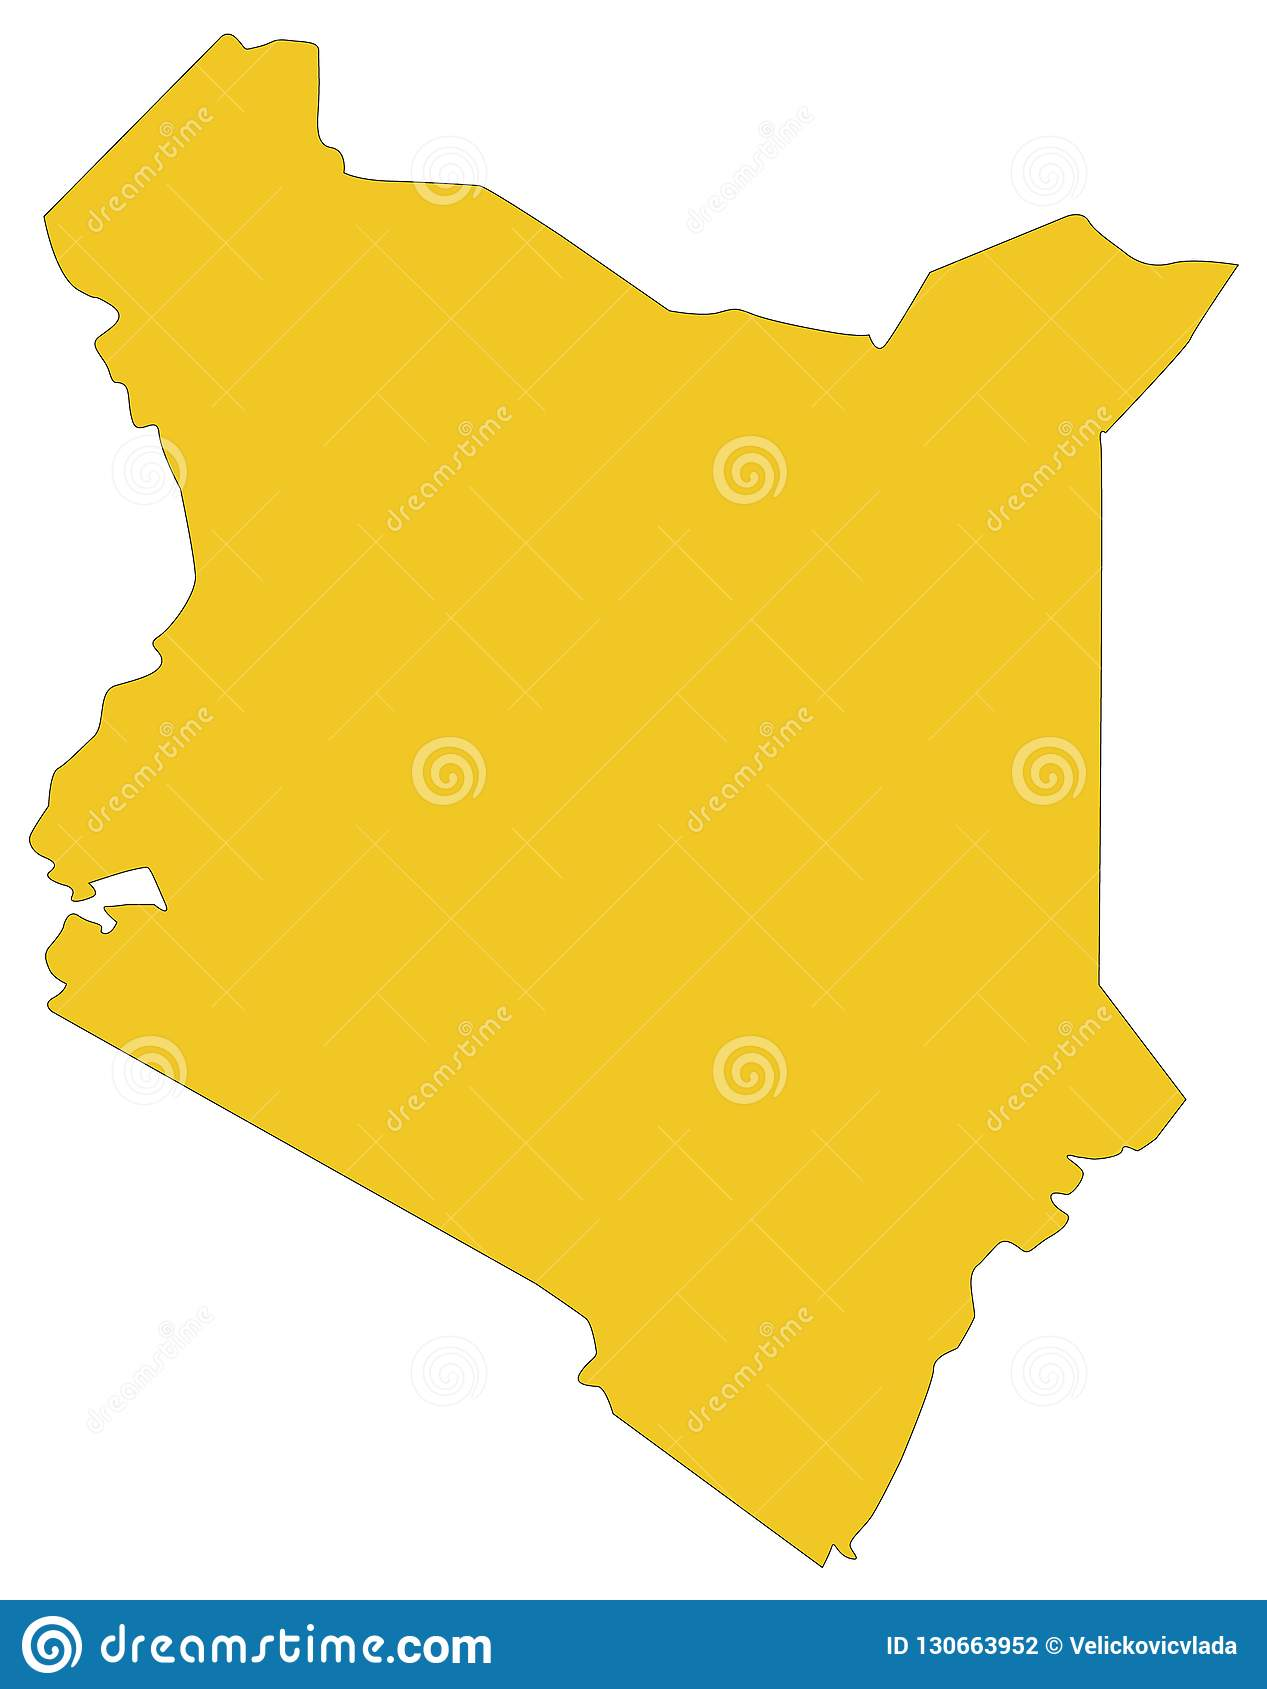 Kenya Map - Country In Africa With Its Capital And Largest City In on ethiopia map, africa map, mozambique map, japan map, peru map, morocco map, egypt map, senegal map, indonesia map, zambia map, sudan map, niger map, angola map, south africa map, chad map, tanzania map, usa map, ghana map, zimbabwe map, madagascar map, libya map, nigeria map, india map, uganda map, malawi map, rwanda map, colombia map, algeria map, namibia map, greece map, china map, cameroon map, mexico map, mpeketoni map, liberia map, mali map, russia map,